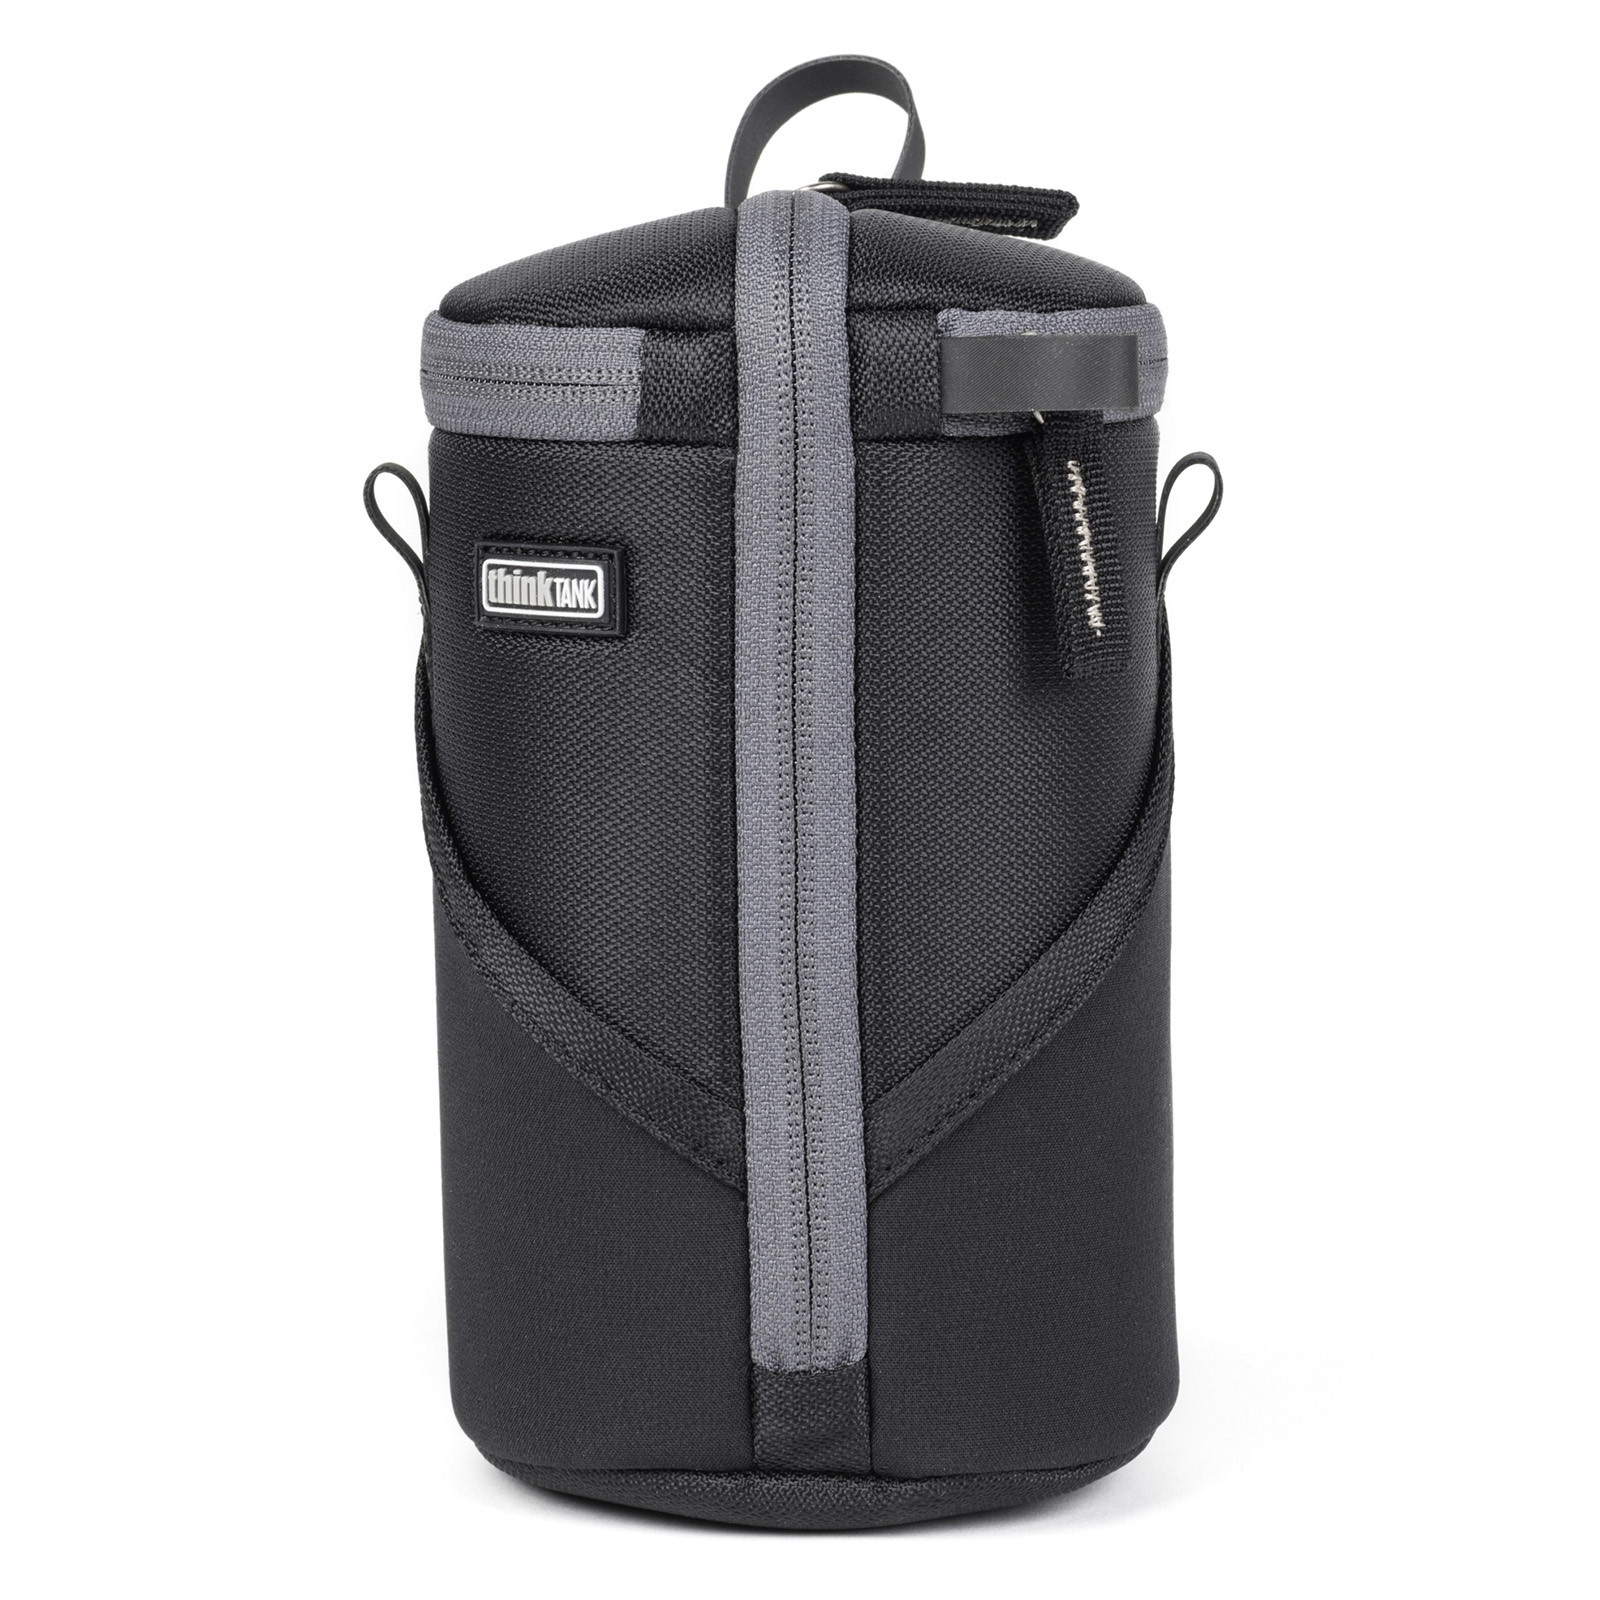 Чехол для объектива Think Tank Lens Case Duo 15 Black